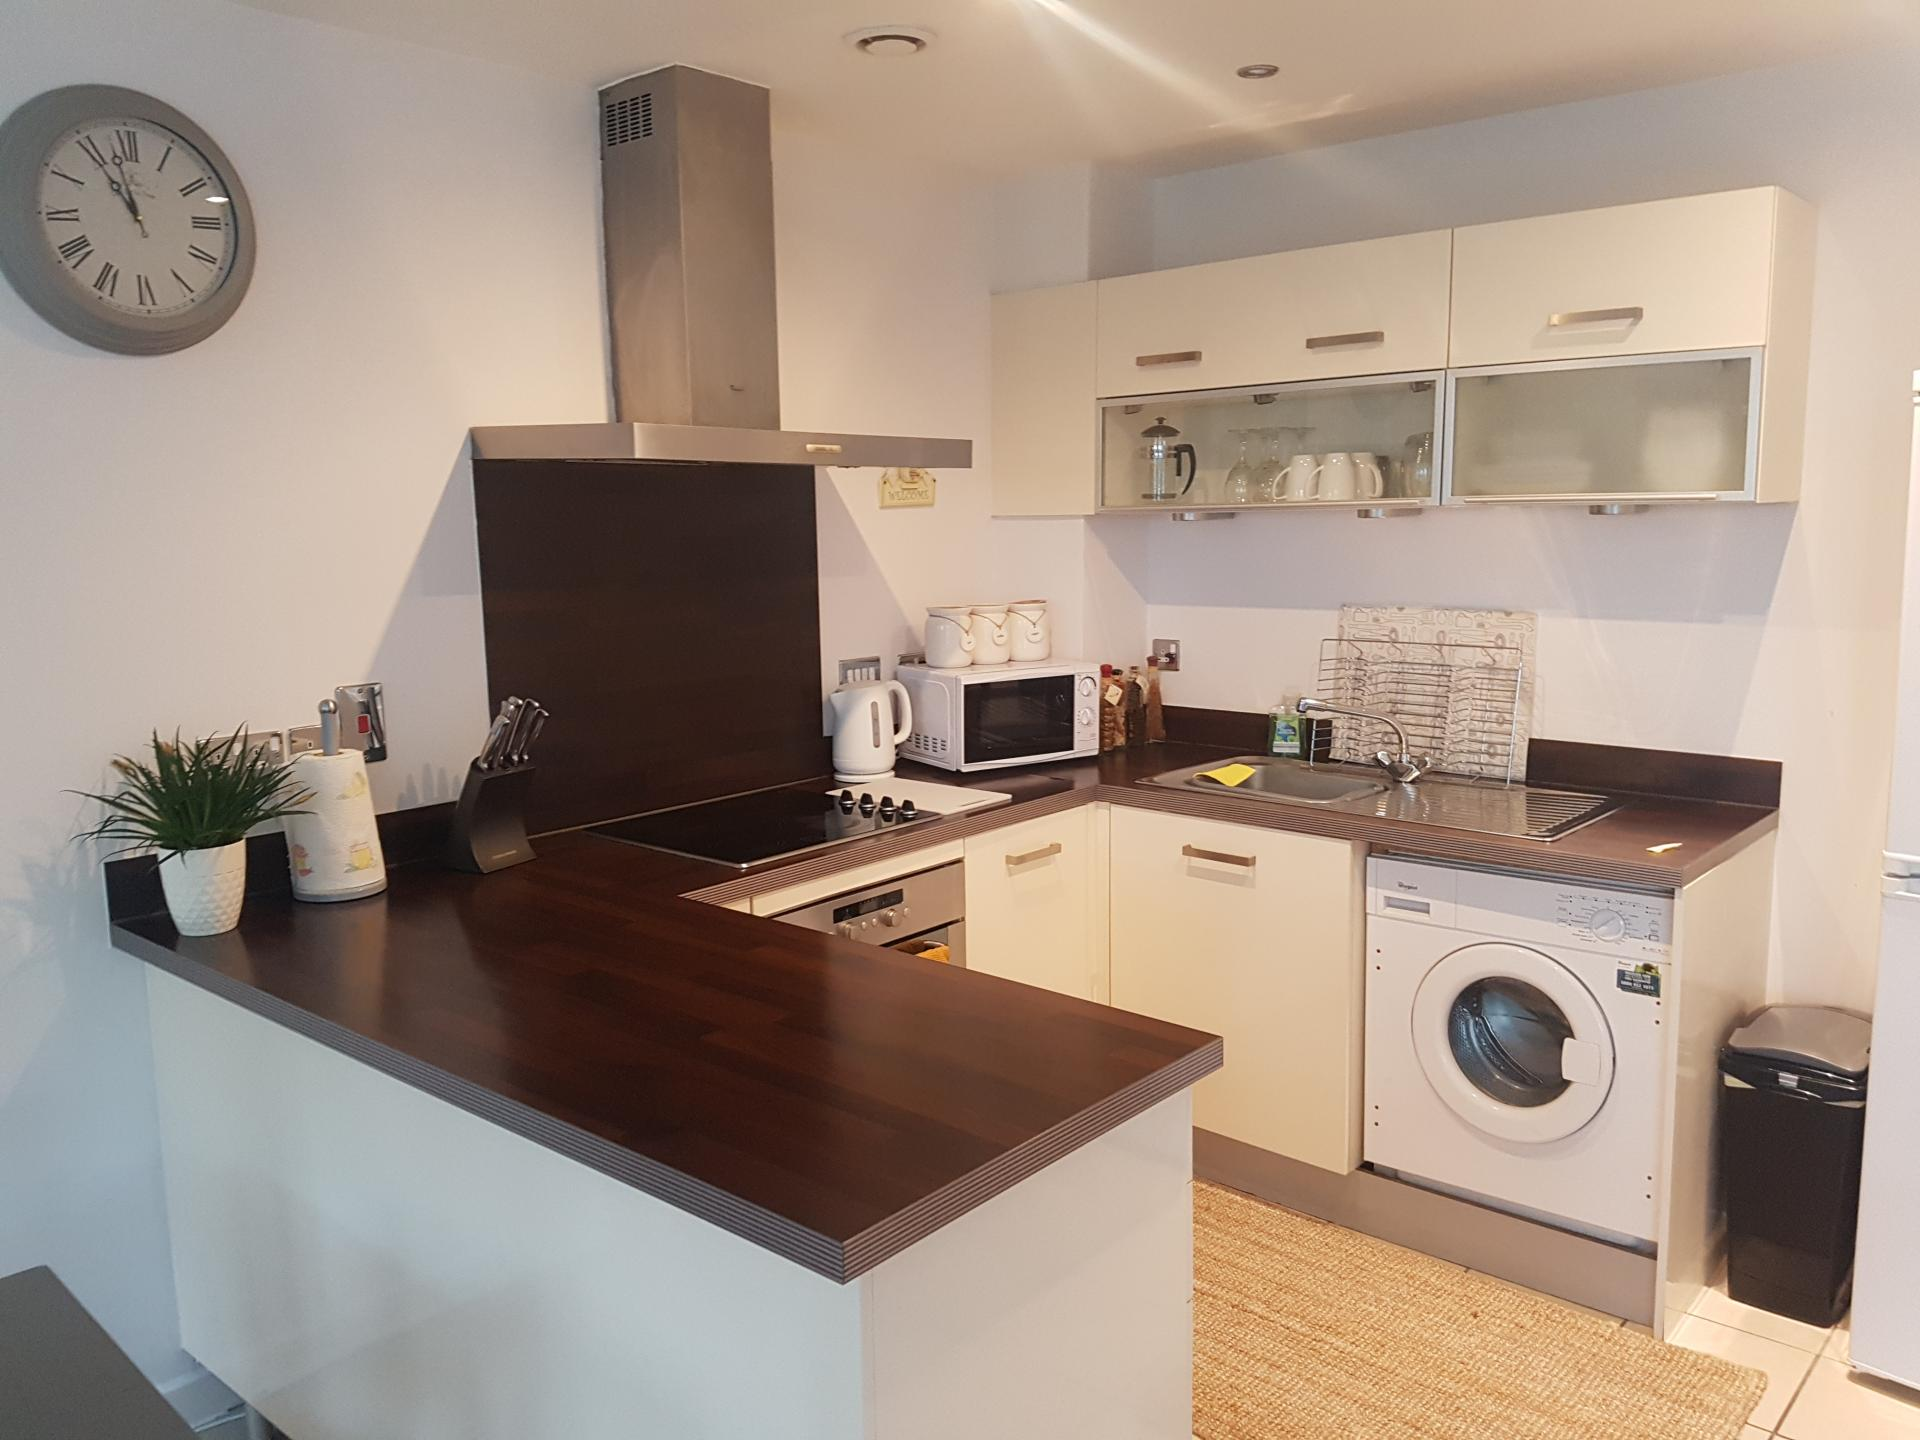 Kitchen at Alpha House Apartment, Centre, Northampton